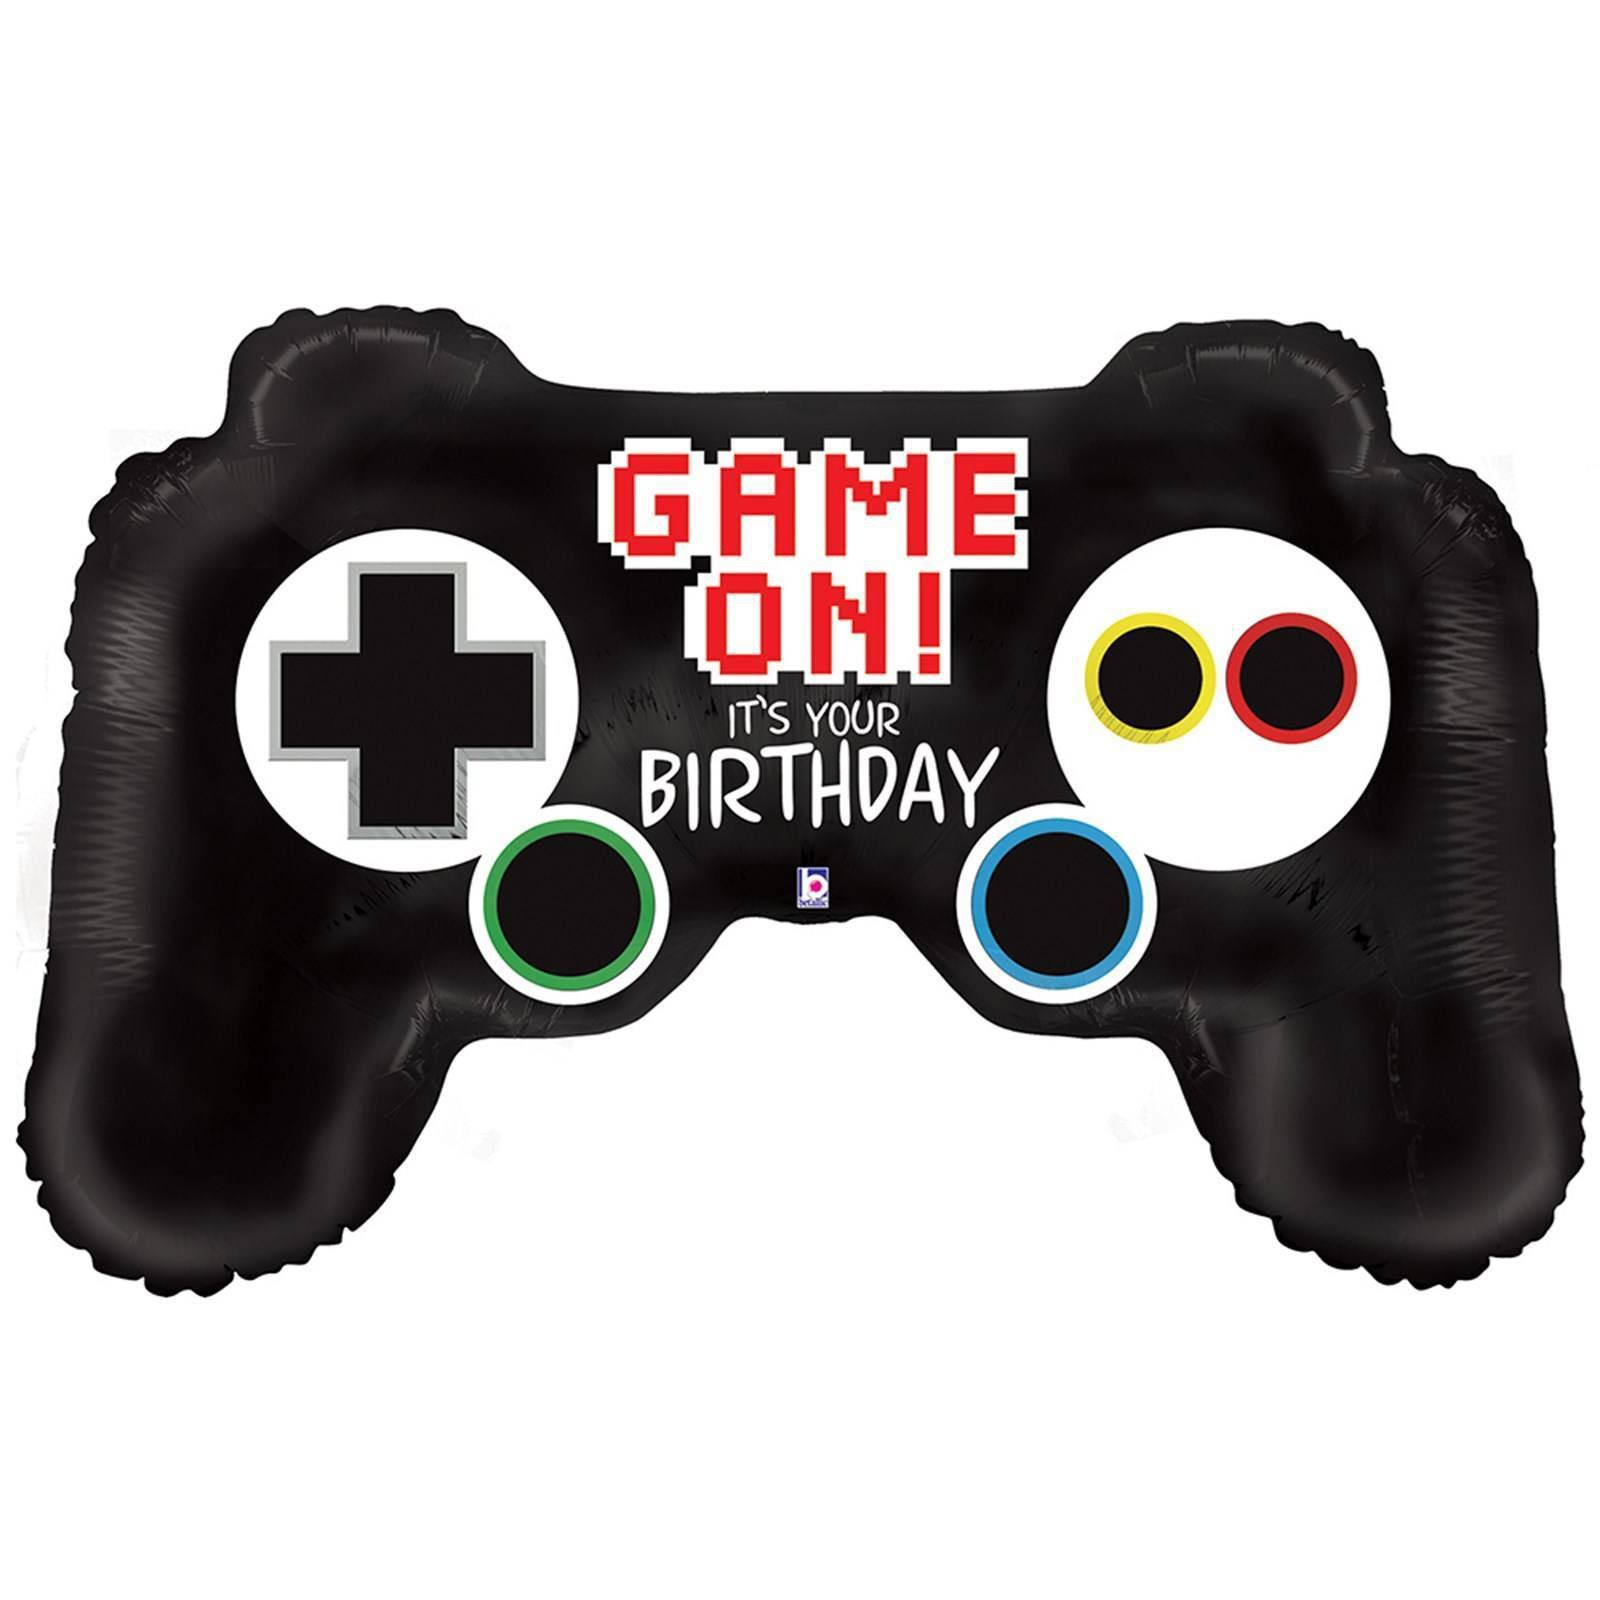 "Game Controller Birthday Supershape Foil Helium Balloon - 36"", 11pc"